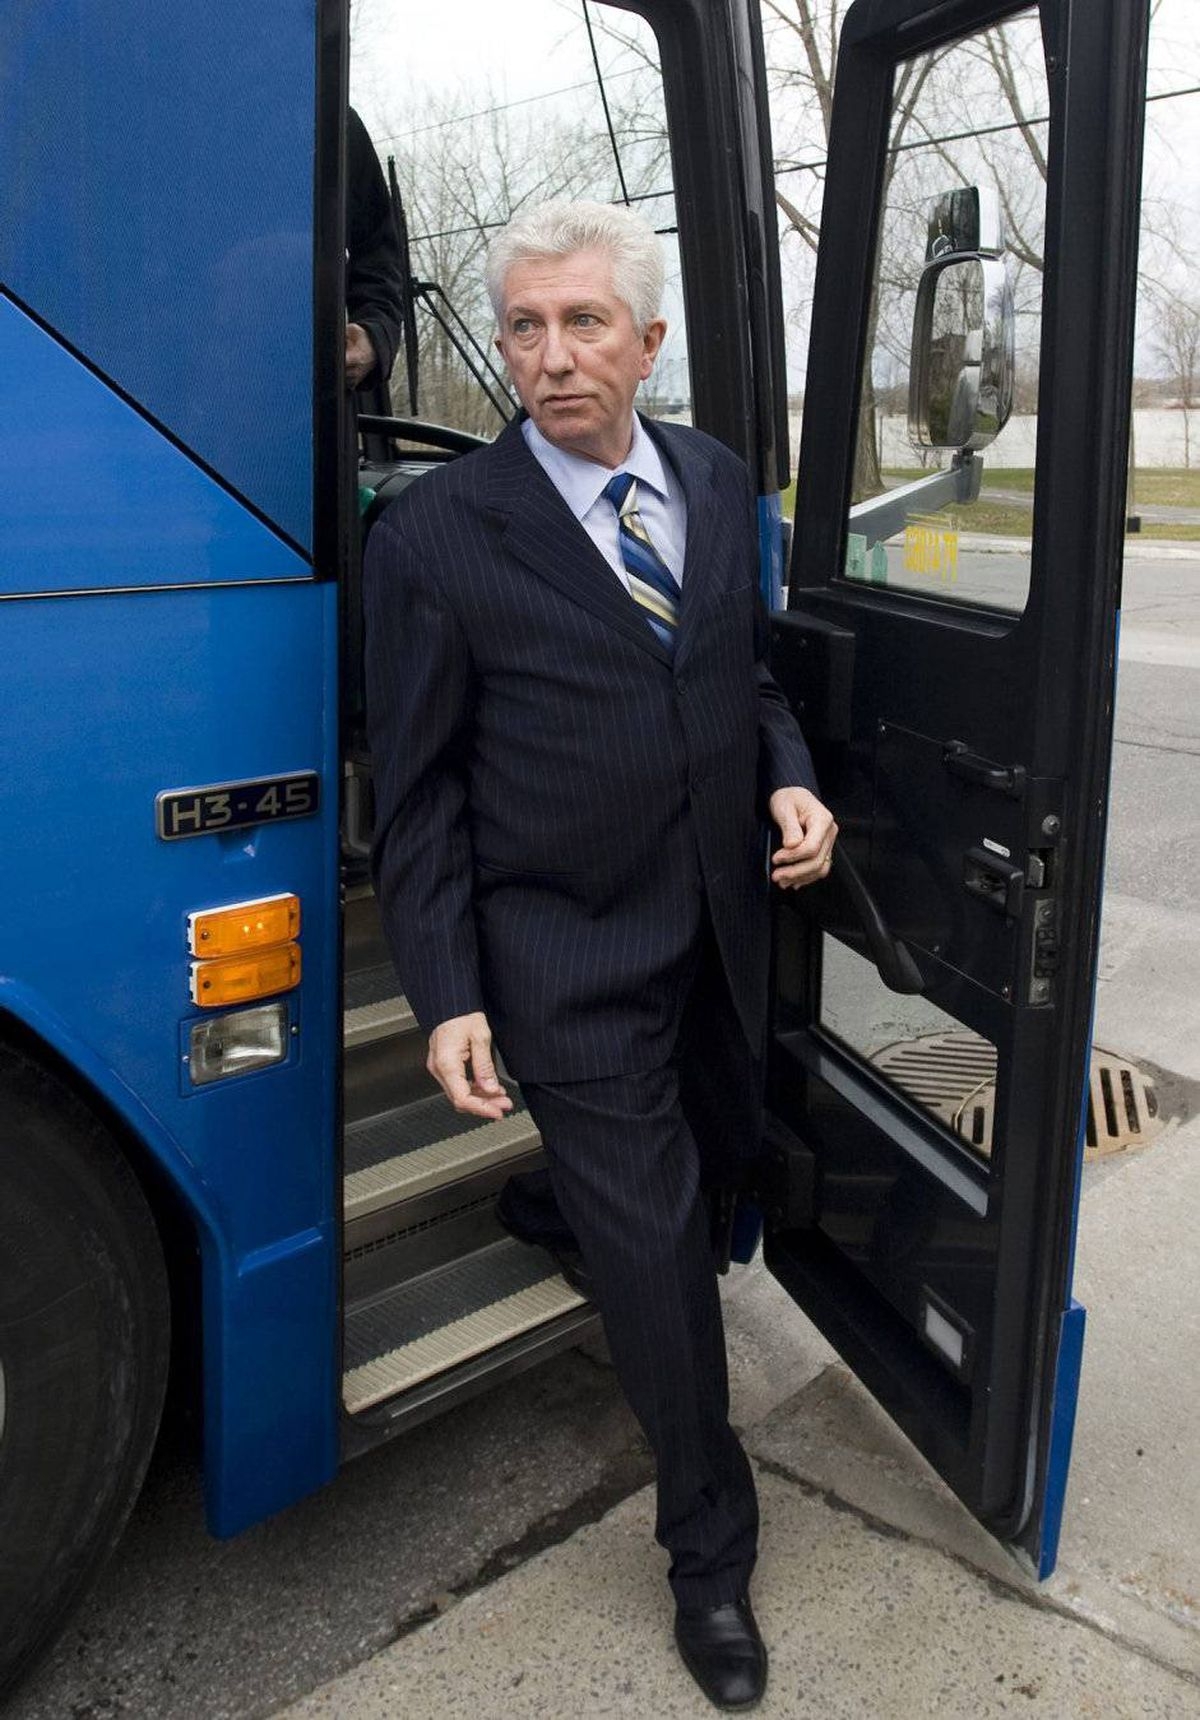 Bloc Québécois Leader Gilles Duceppe spent Monday in Montreal where met with artists and presented the party's priorities on cultural issues. Mr. Duceppe said his party is proposing a series of fiscal, budgetary and legislative measures to improve artists' living conditions. He also talked about copyright laws and the importance of culture to Quebec. He ended his day in the riding of Pointe-aux-Trembles to pay tribute to long-time Bloc MP Francine Lalonde, who is not running for re-election. (Photo: Gilles Duceppe, left, arrives at a cultural centre during a federal election campaign in Montreal)